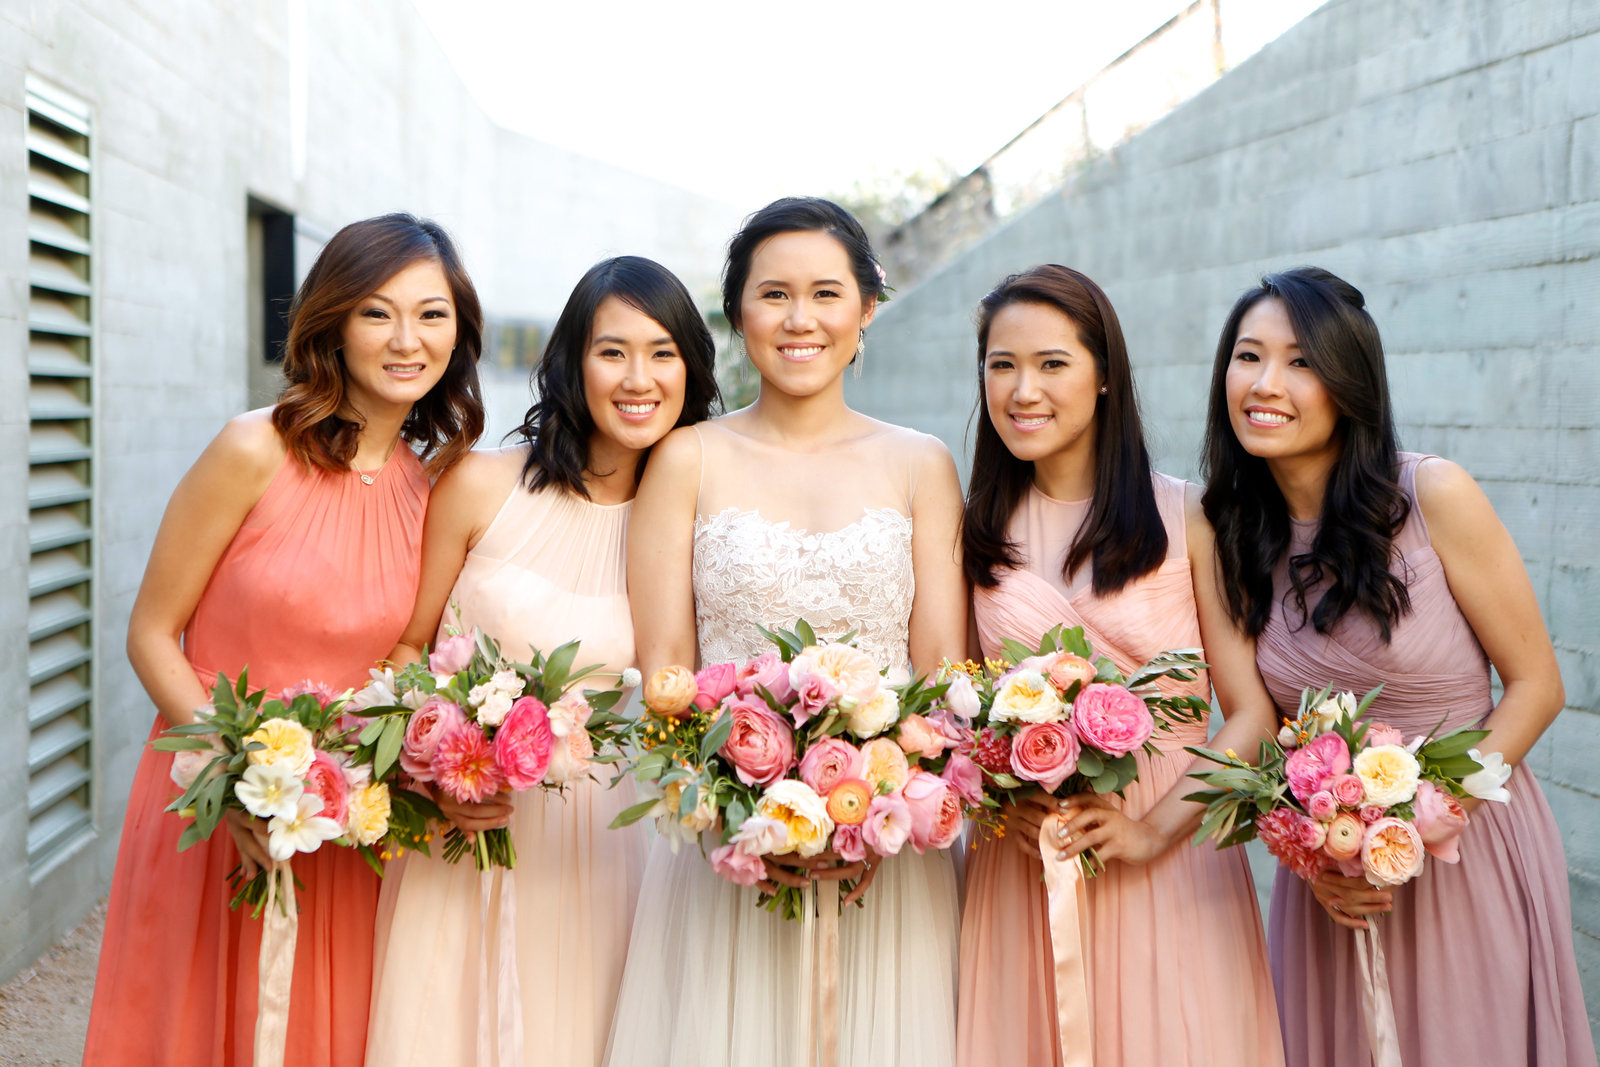 purple coral and peach bridesmaids dresses with colorful bouquets